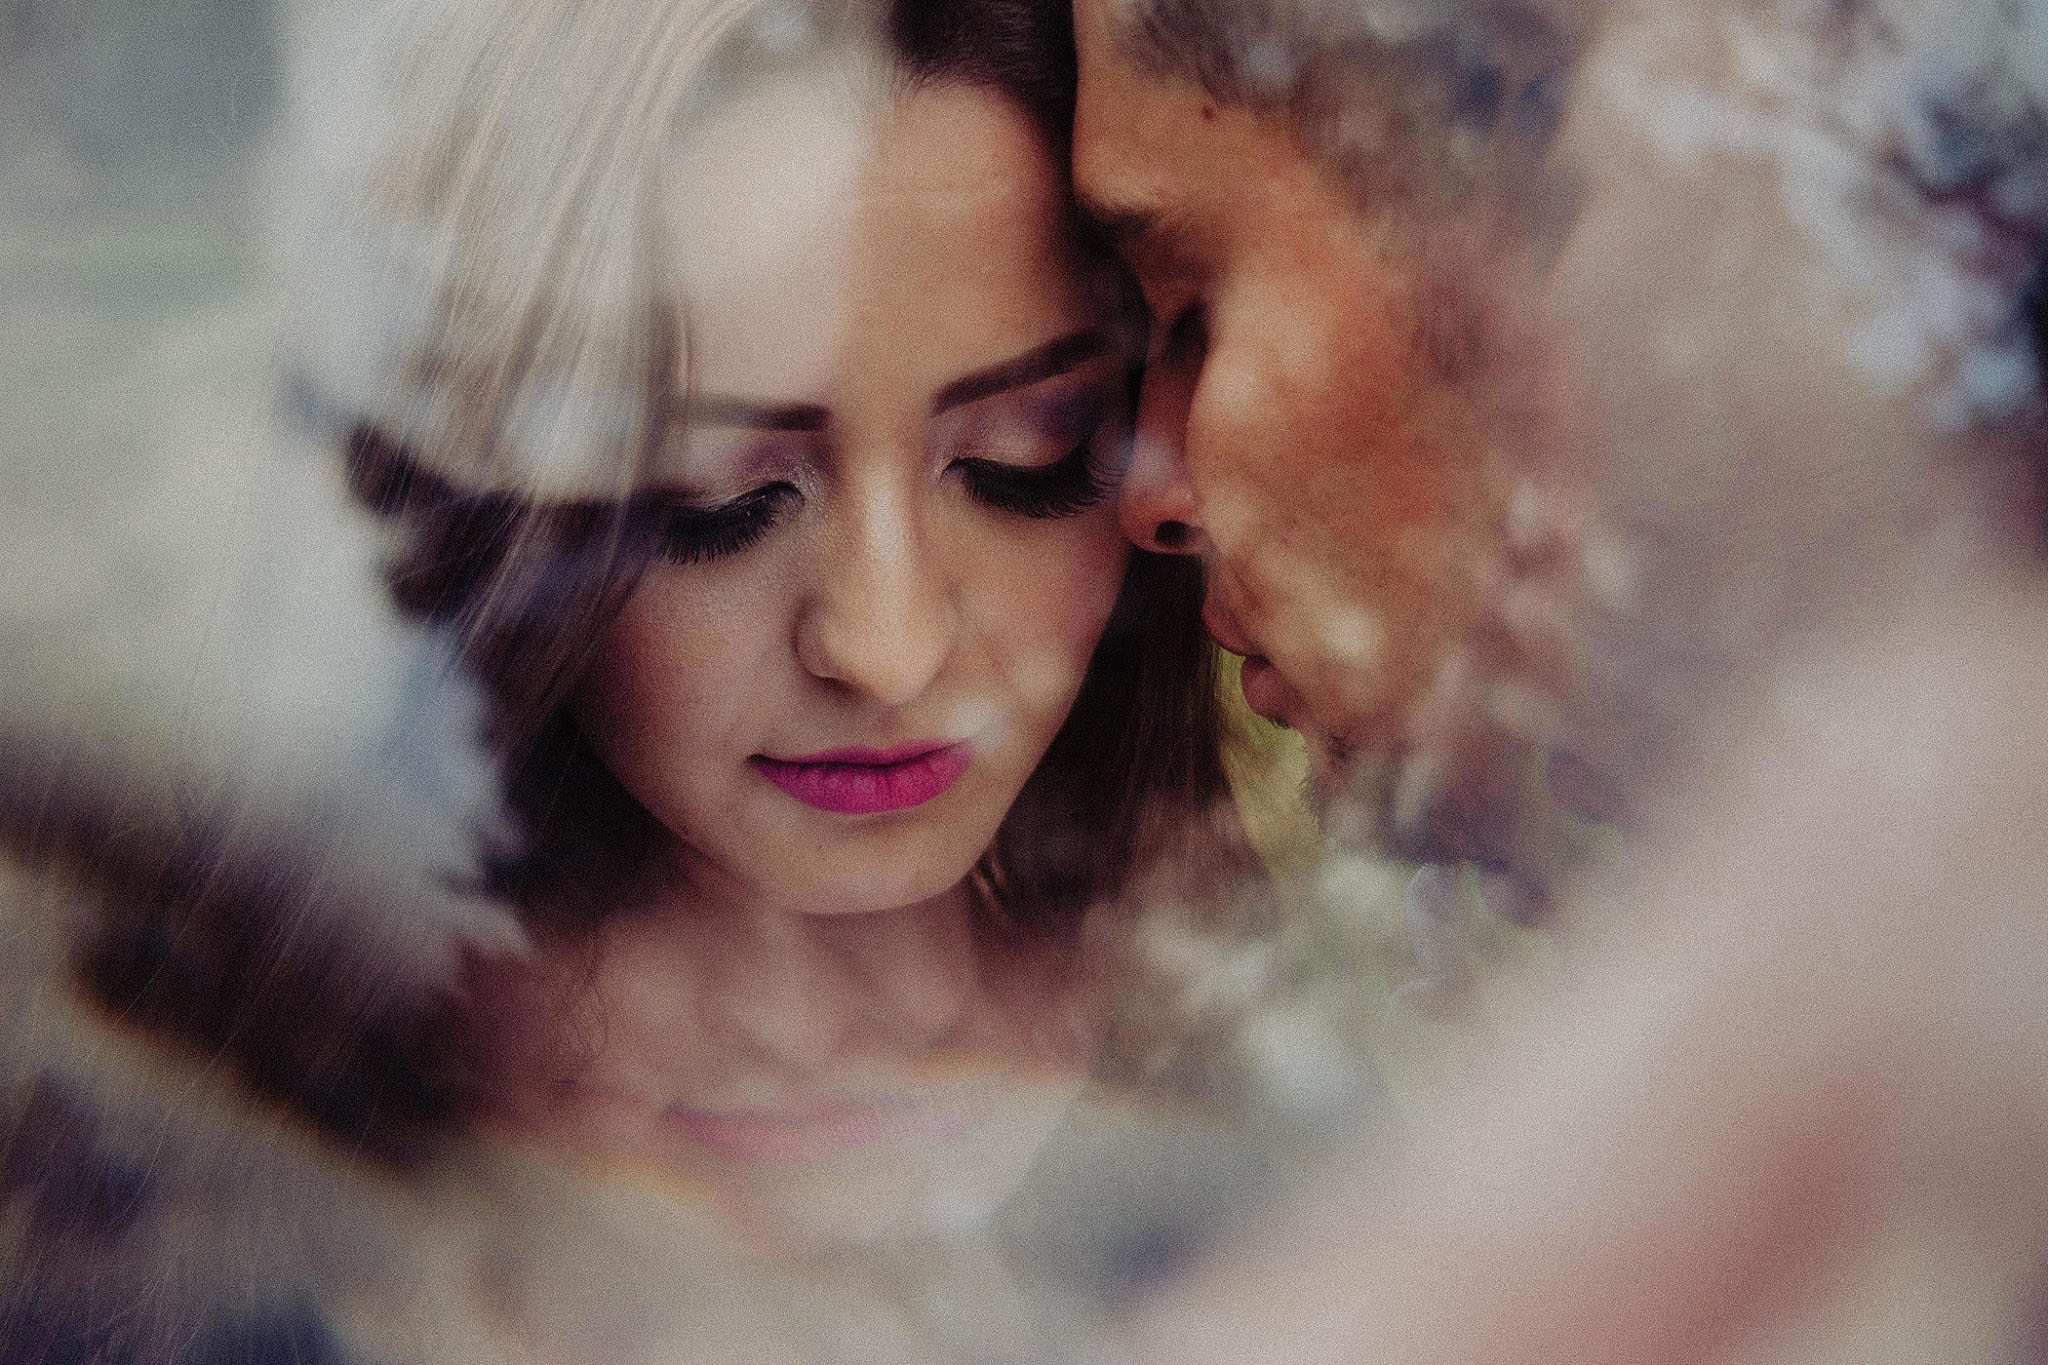 couple-portrait-photoshoot-prism-creative